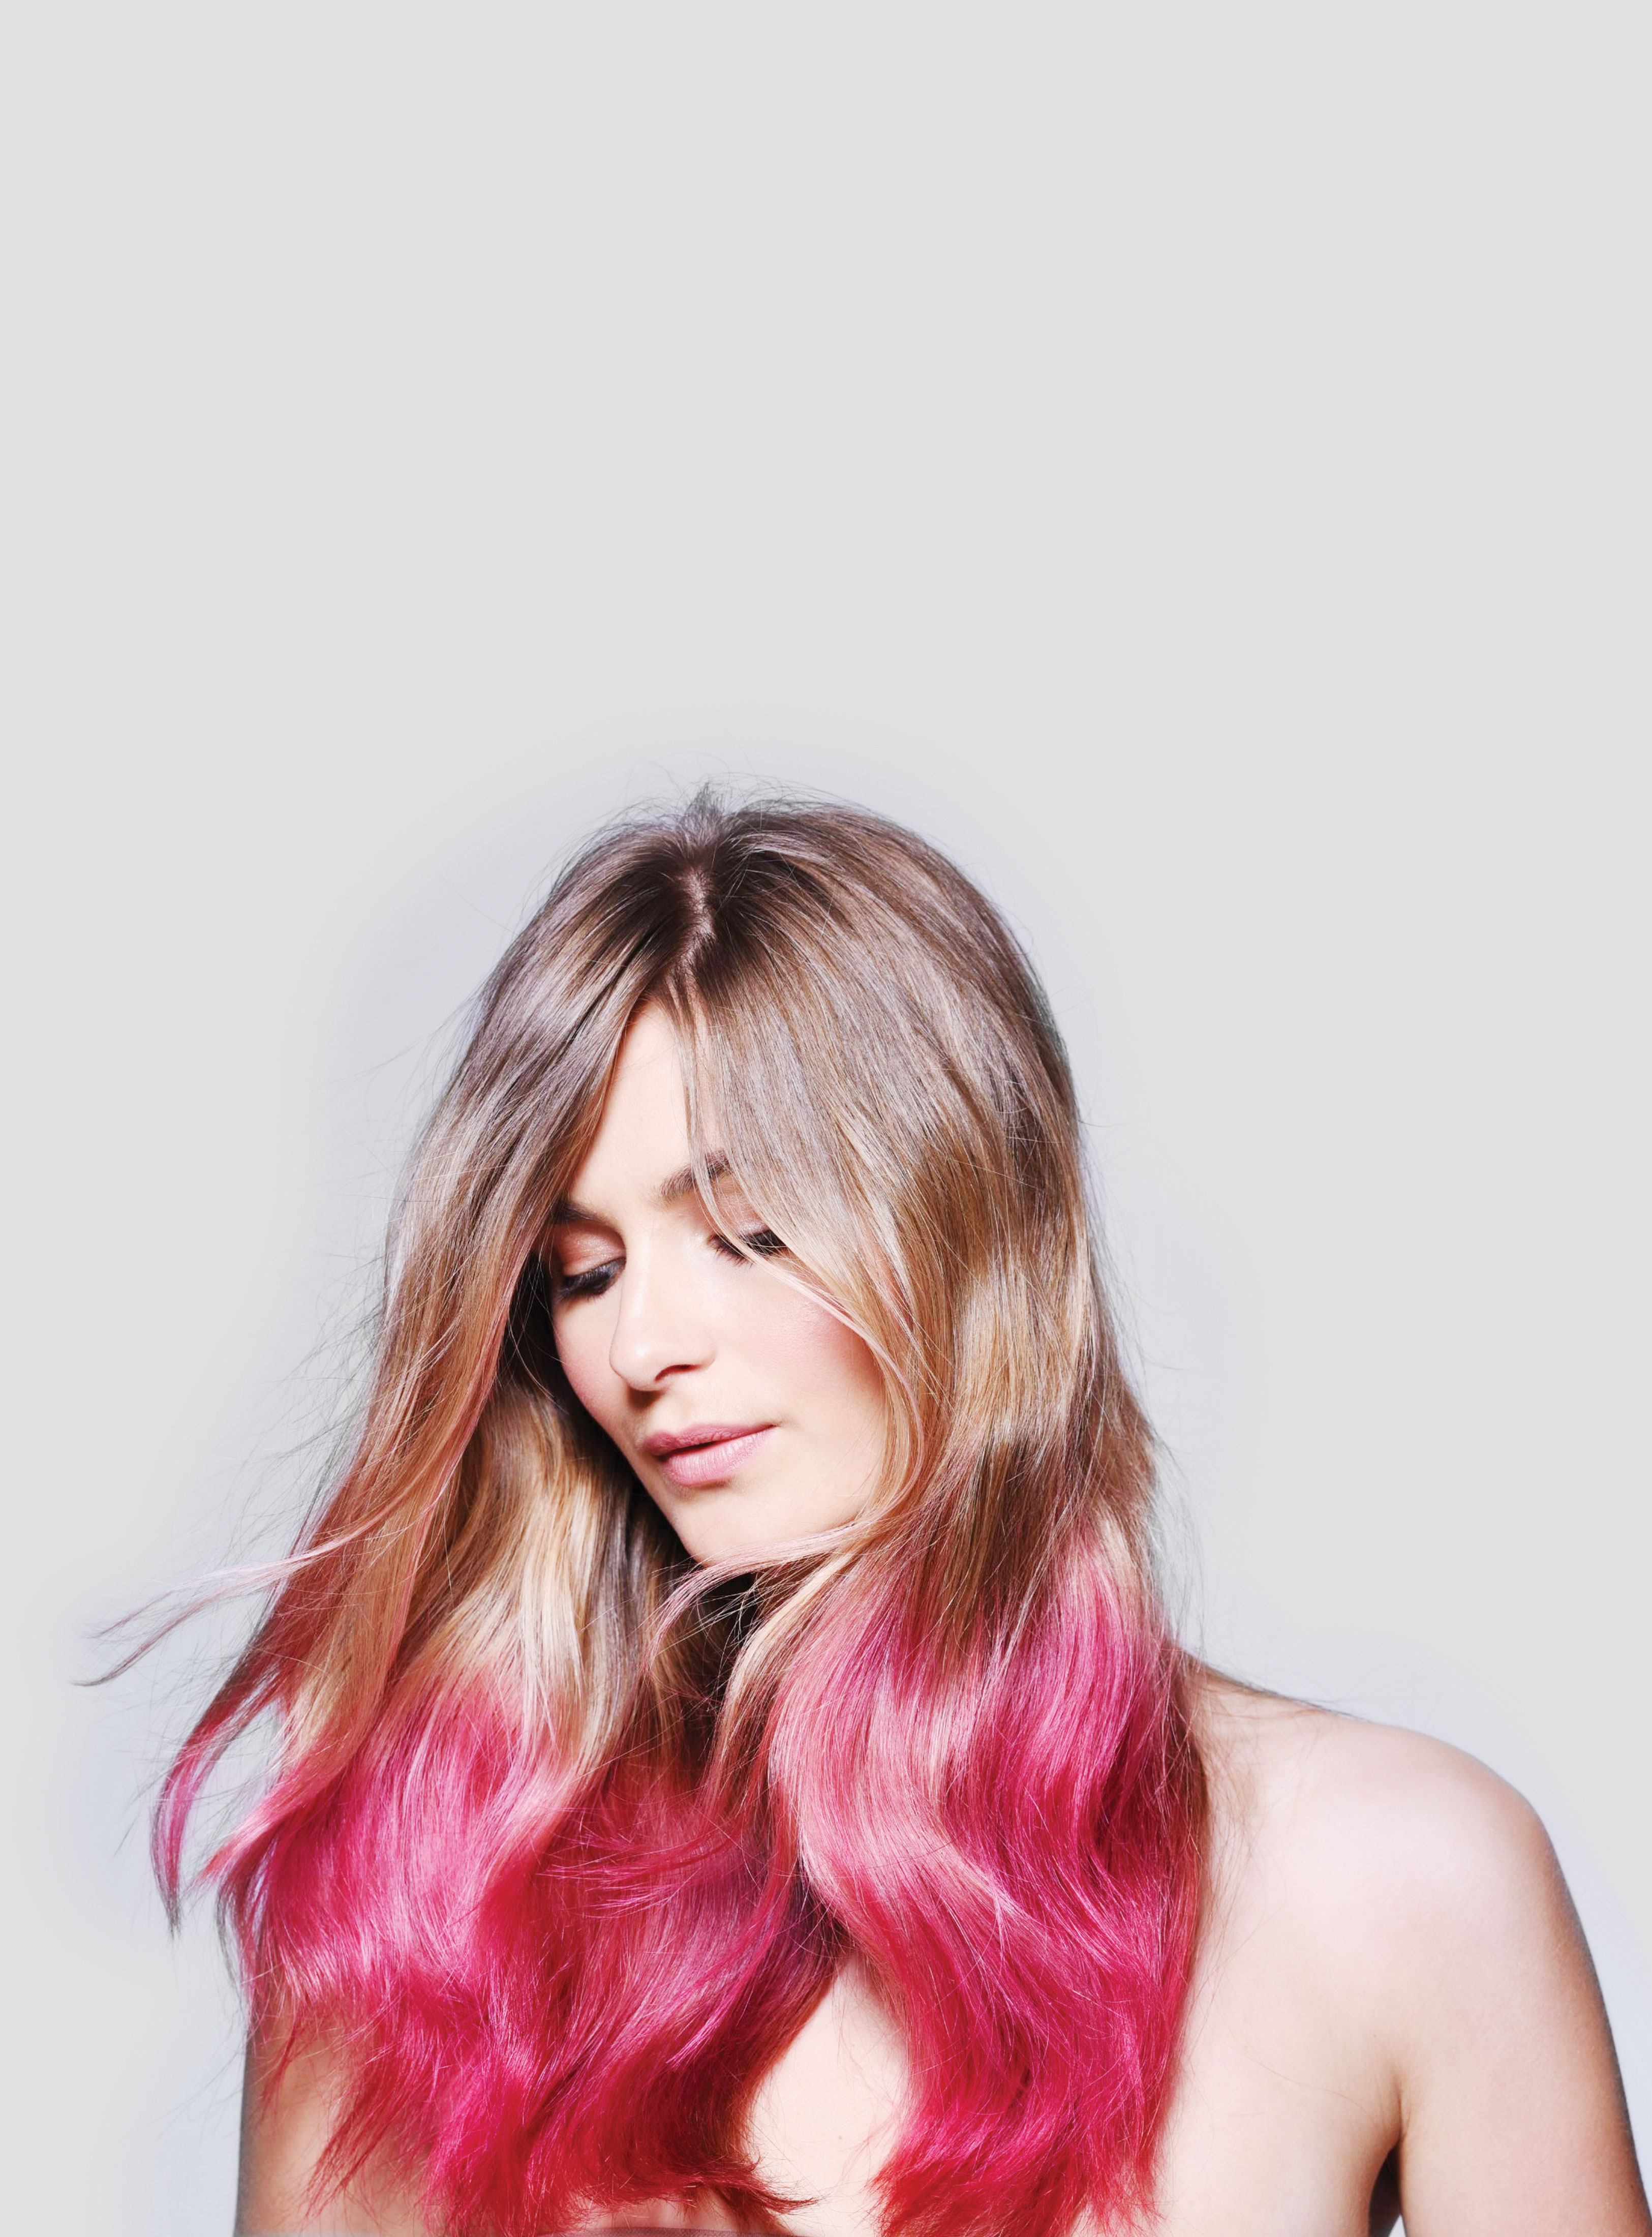 Colorsmash Color Kissed Hairspray Allows for Creativity Without Commitment